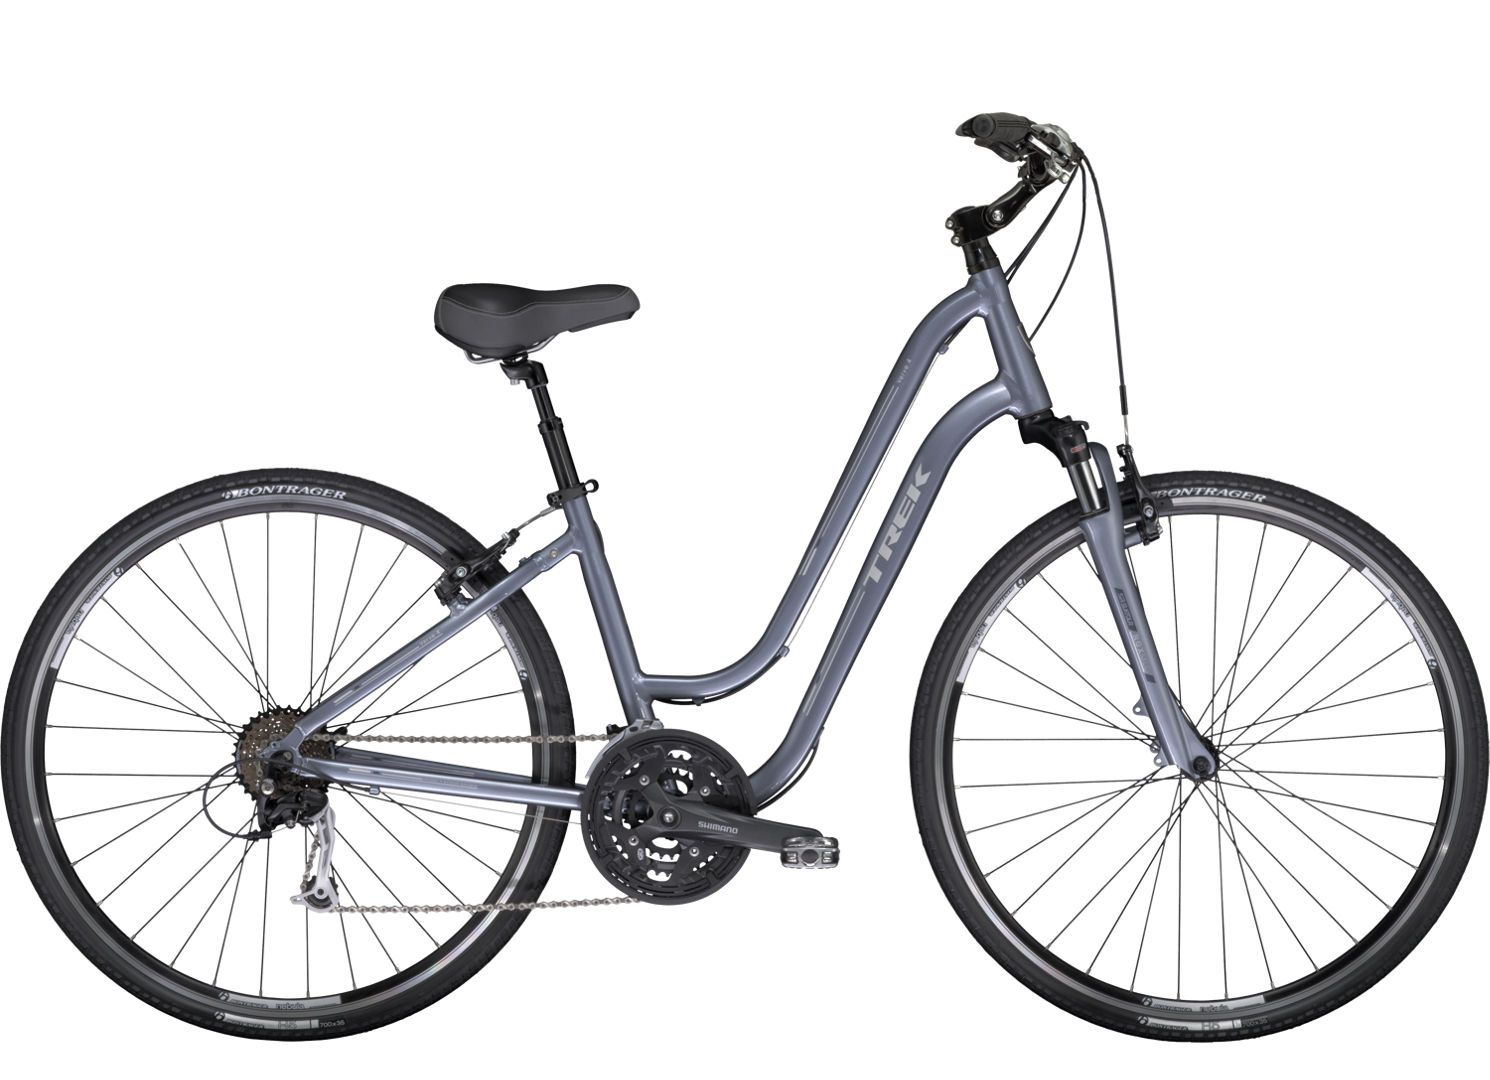 Verve 4 Wsd Trek Bicycle Best Bike For Women Who Want To Ride